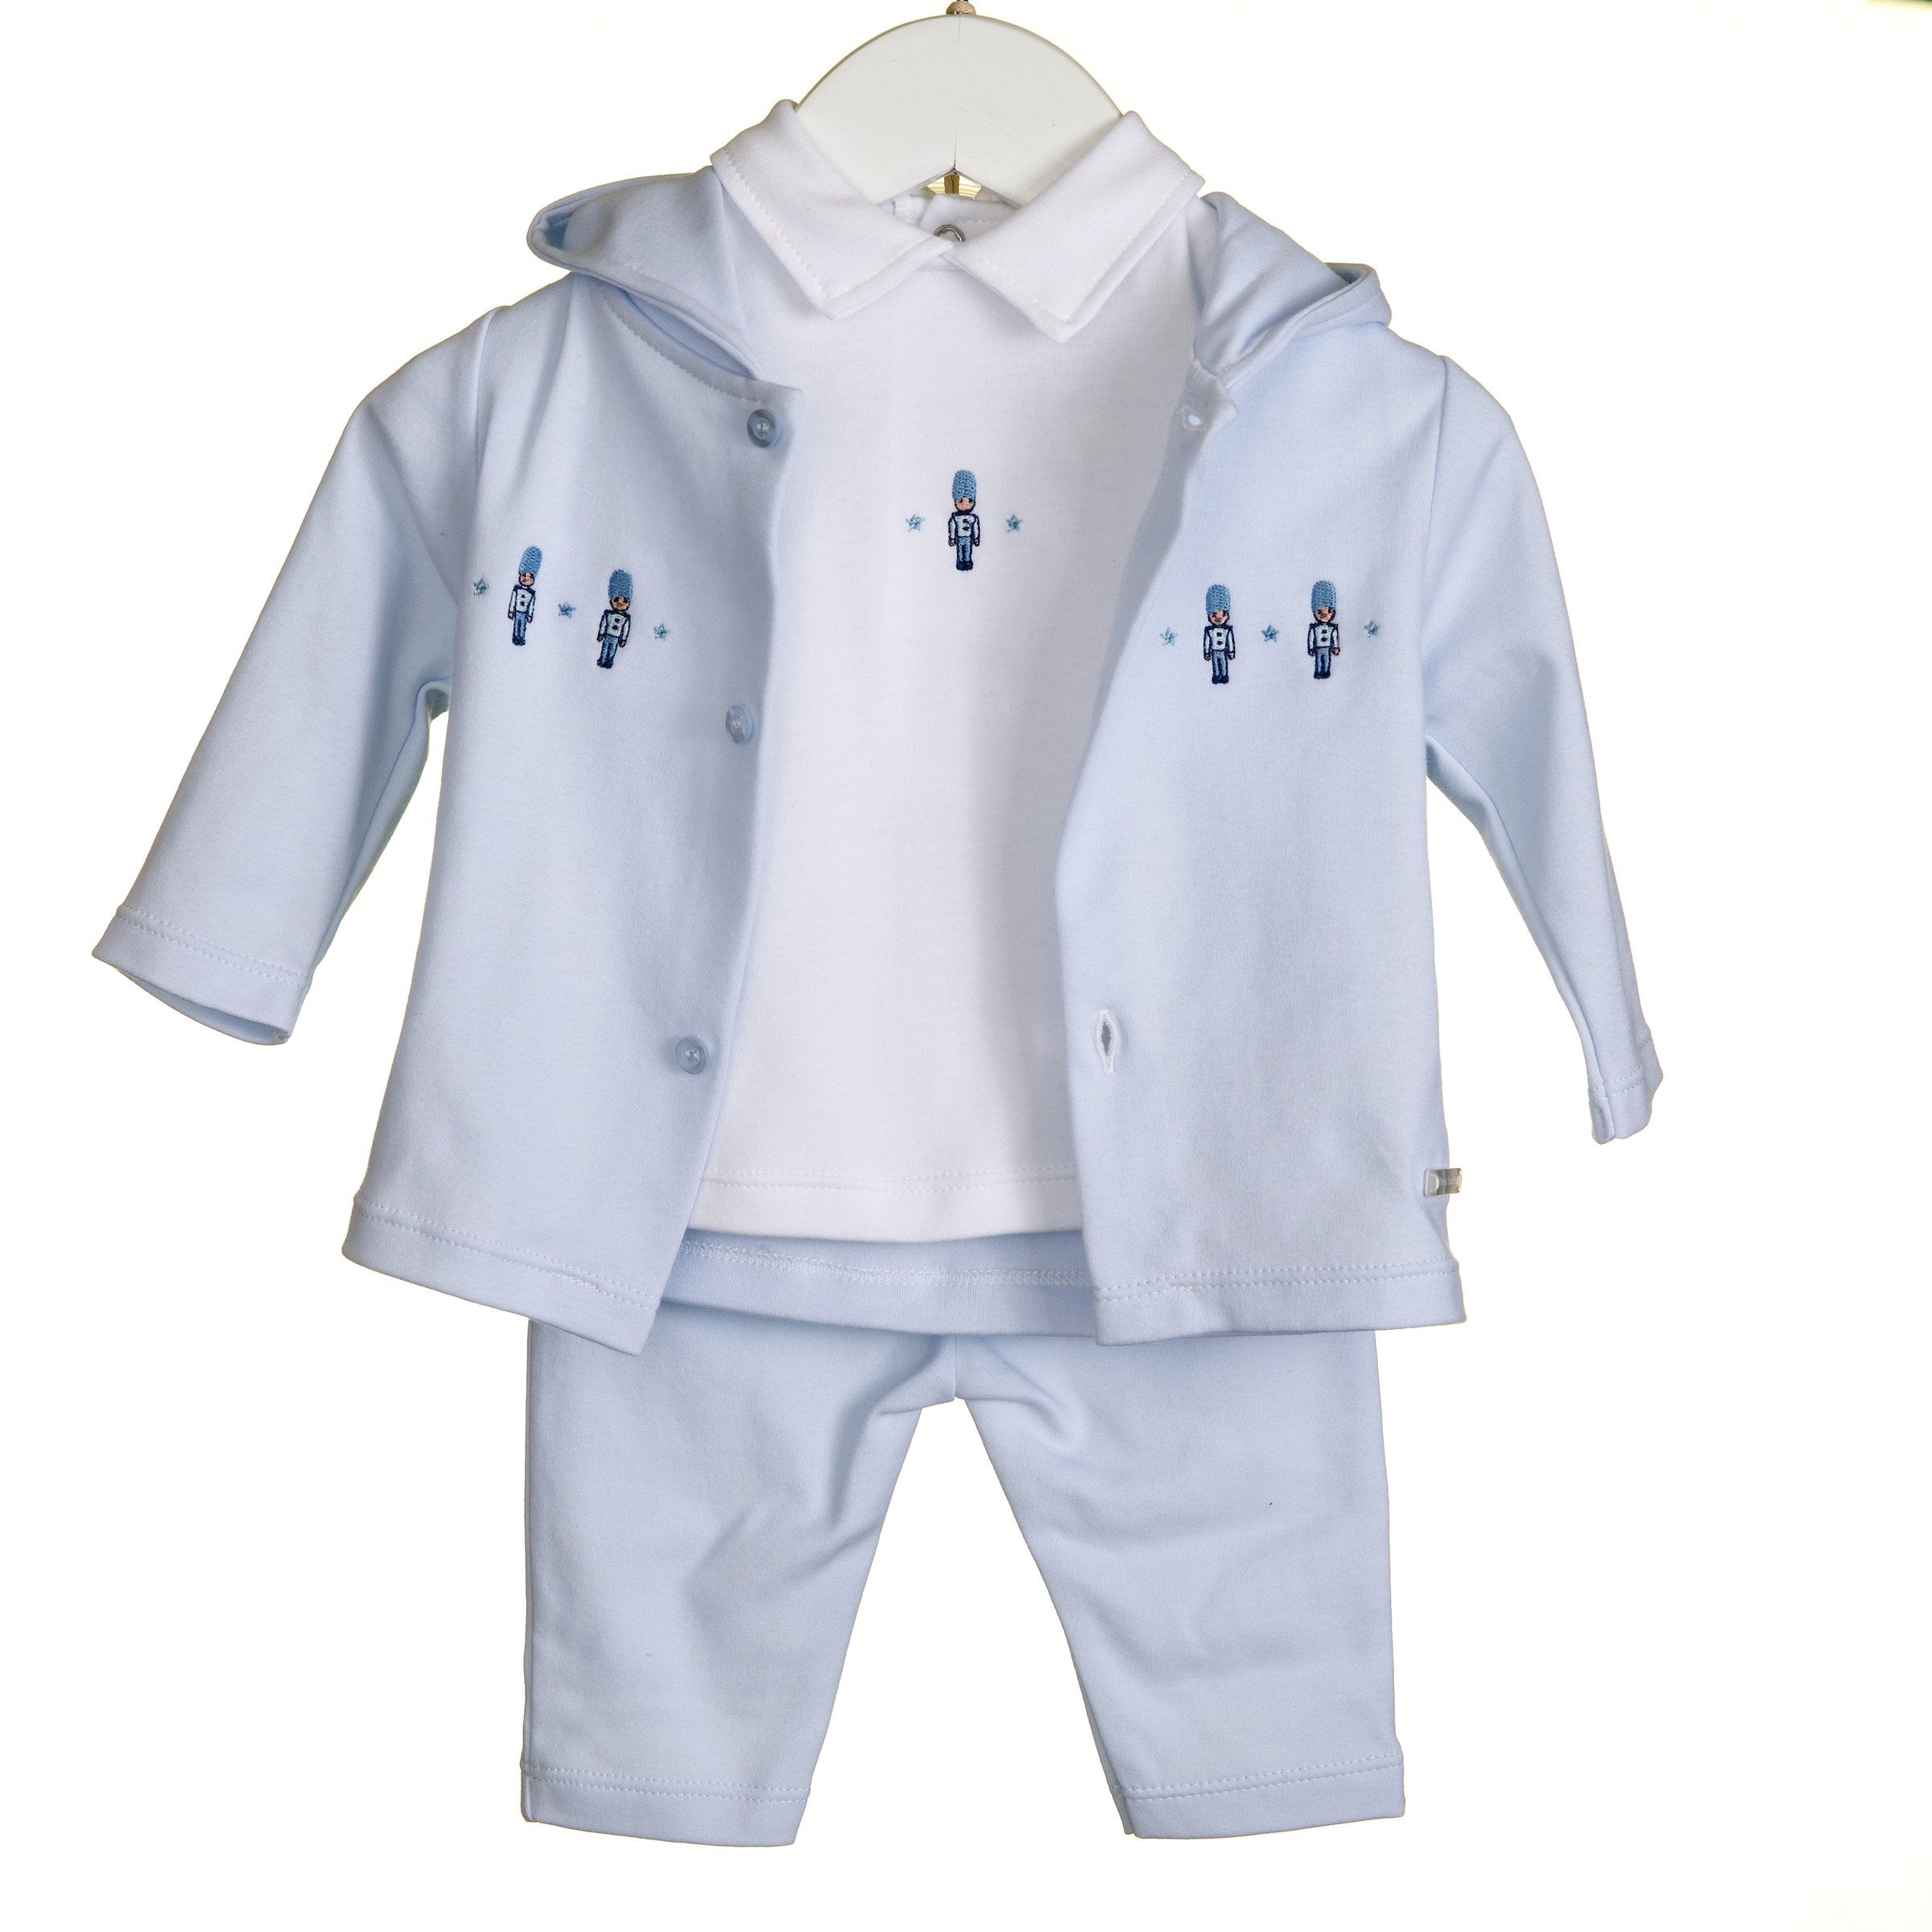 Blues Baby 3pc Solider Outfit